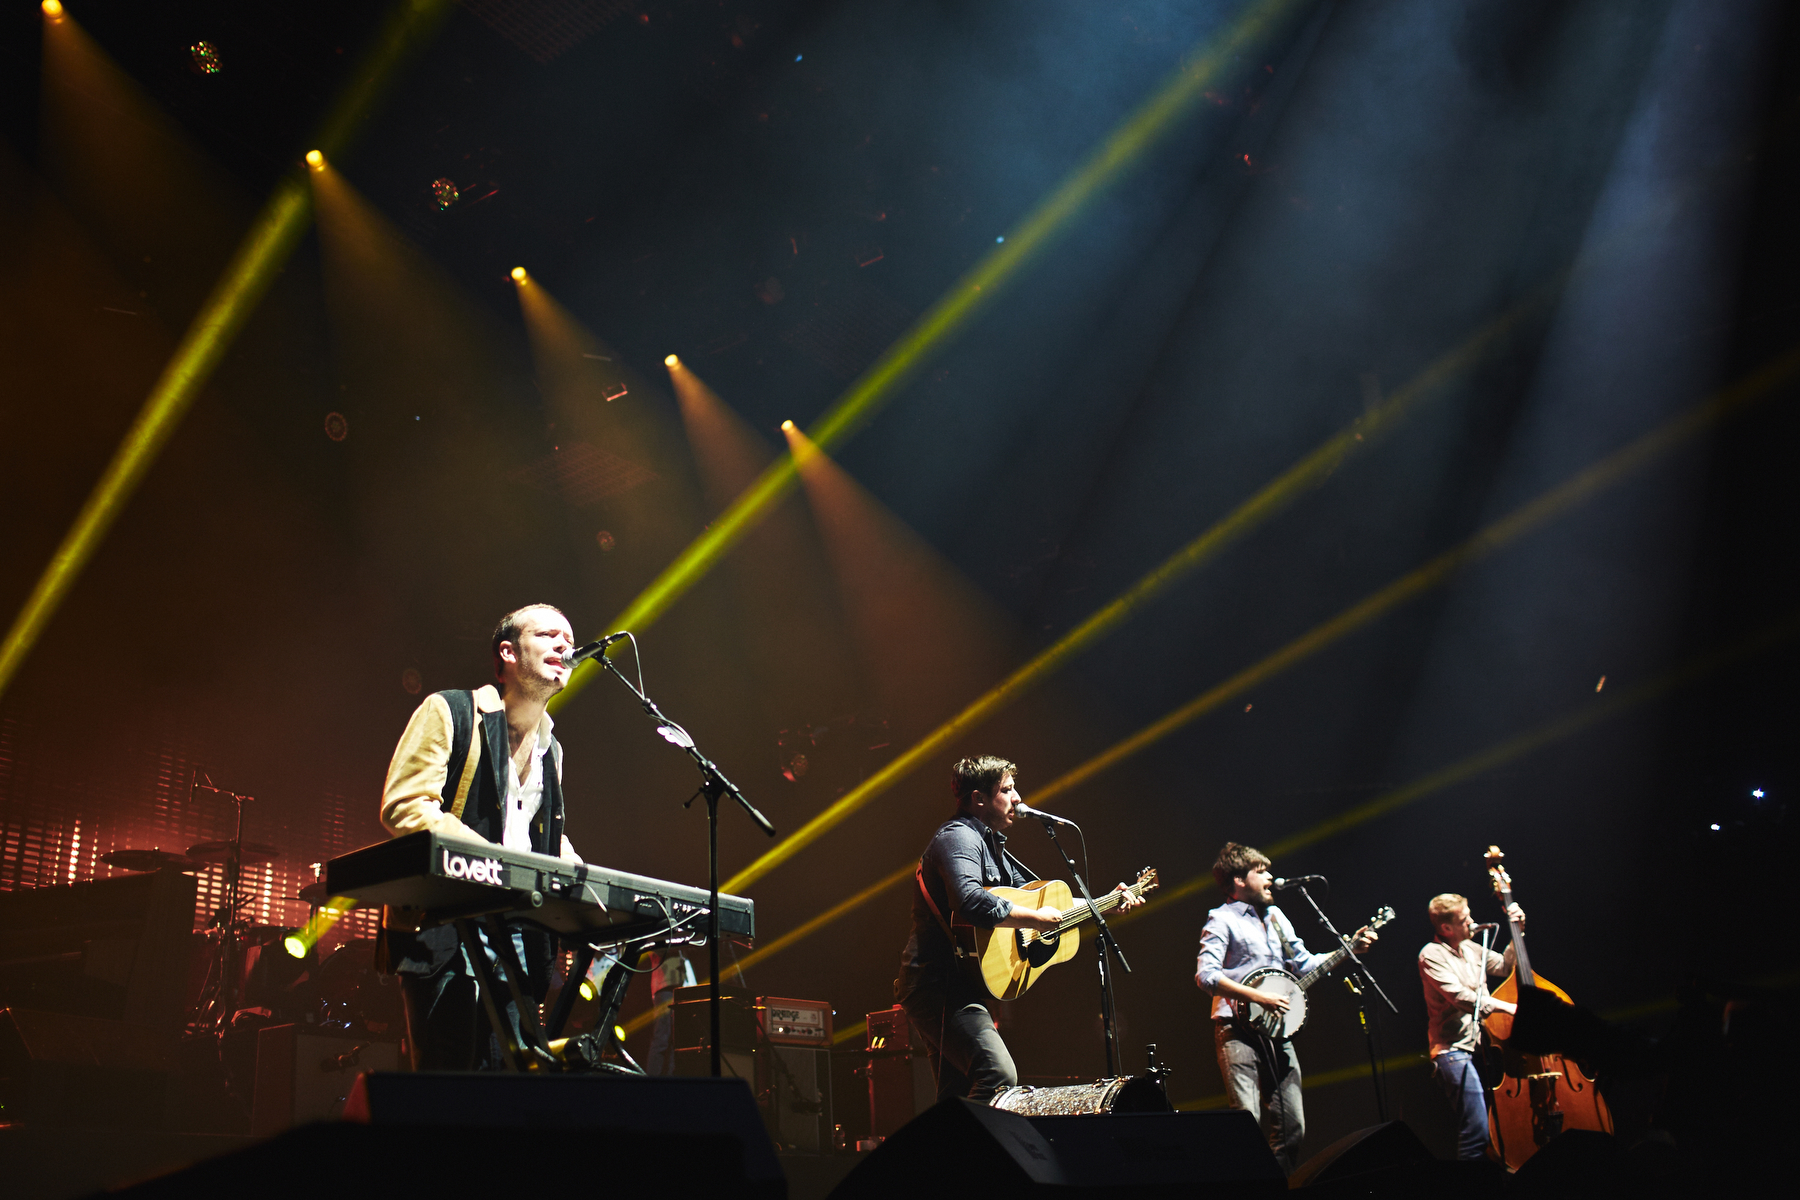 Mumford_And_Sons_At_Xcel_Energy_Center_By_Joe_Lemke_Medium_Res_013.JPG